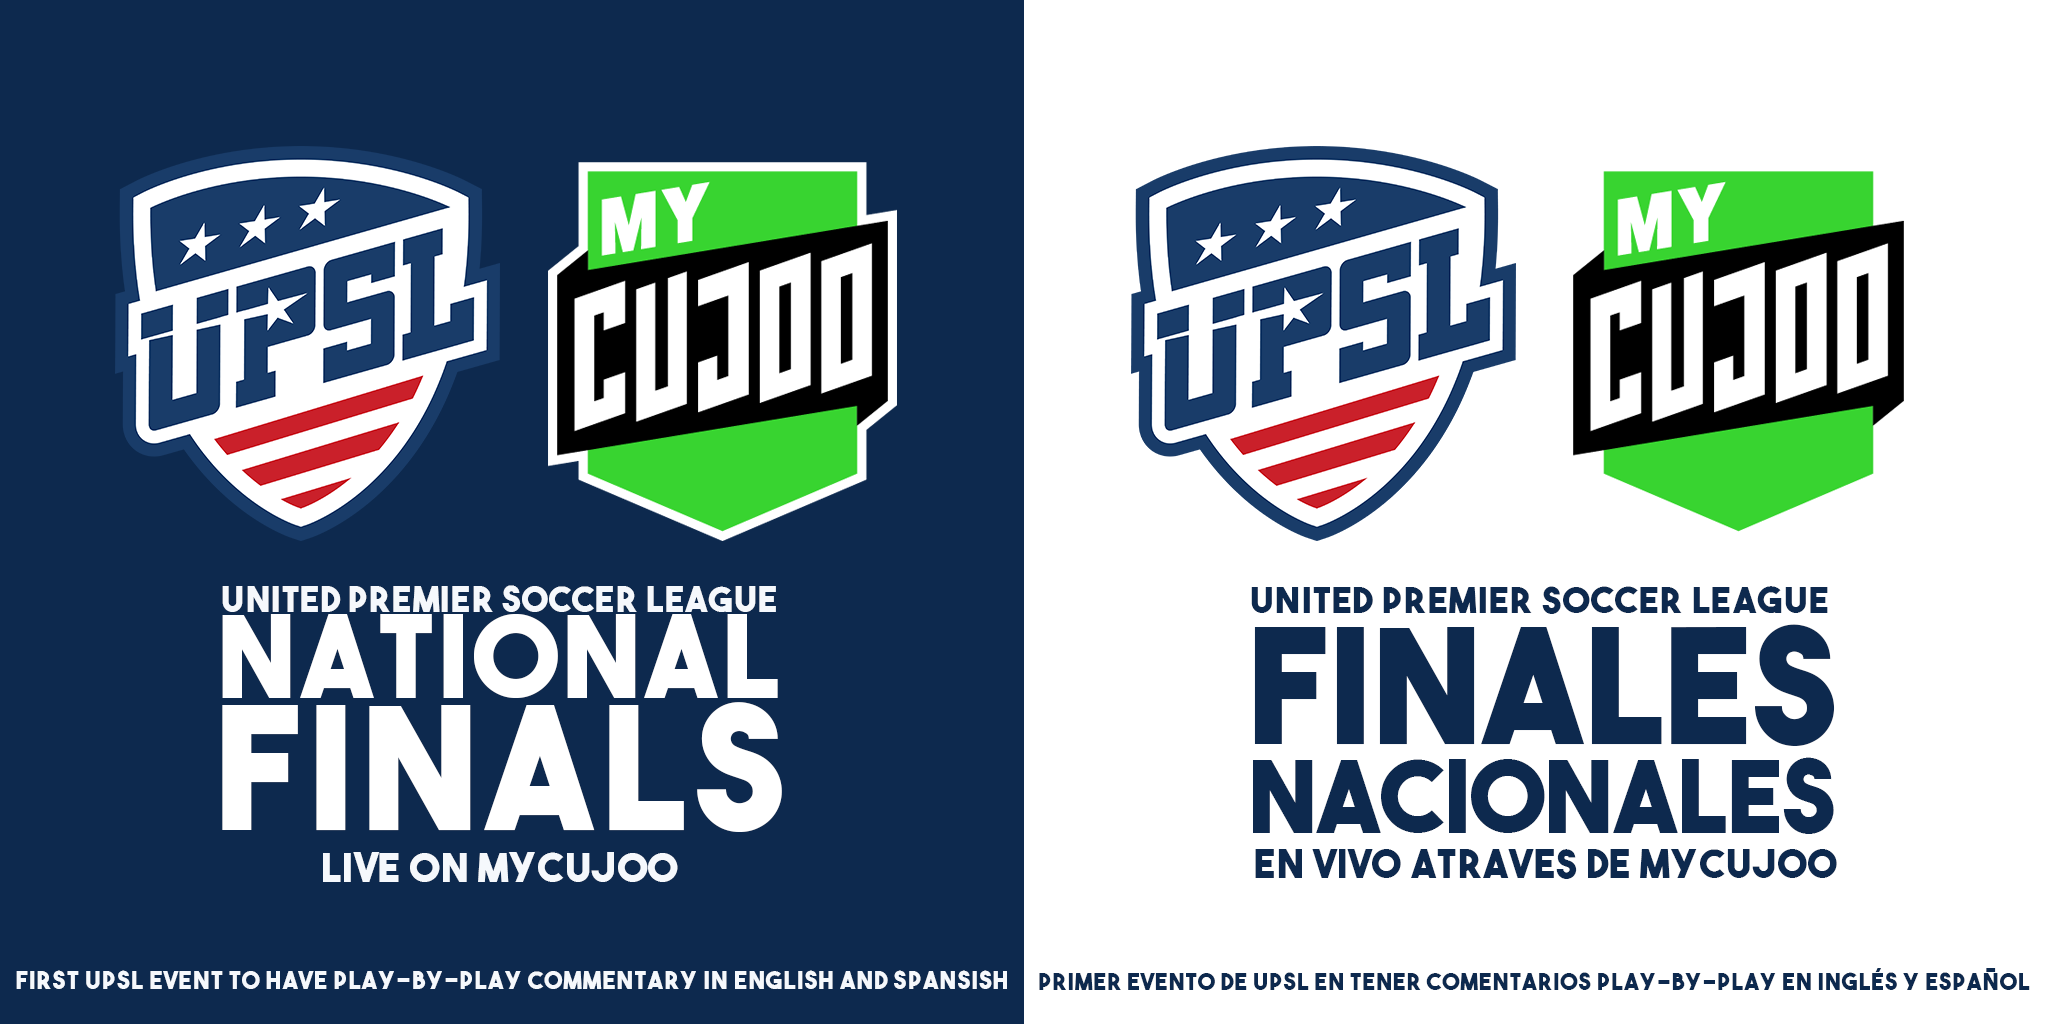 UPSL Announces First Spanish-language Broadcast for National Finals on MyCujoo.tv